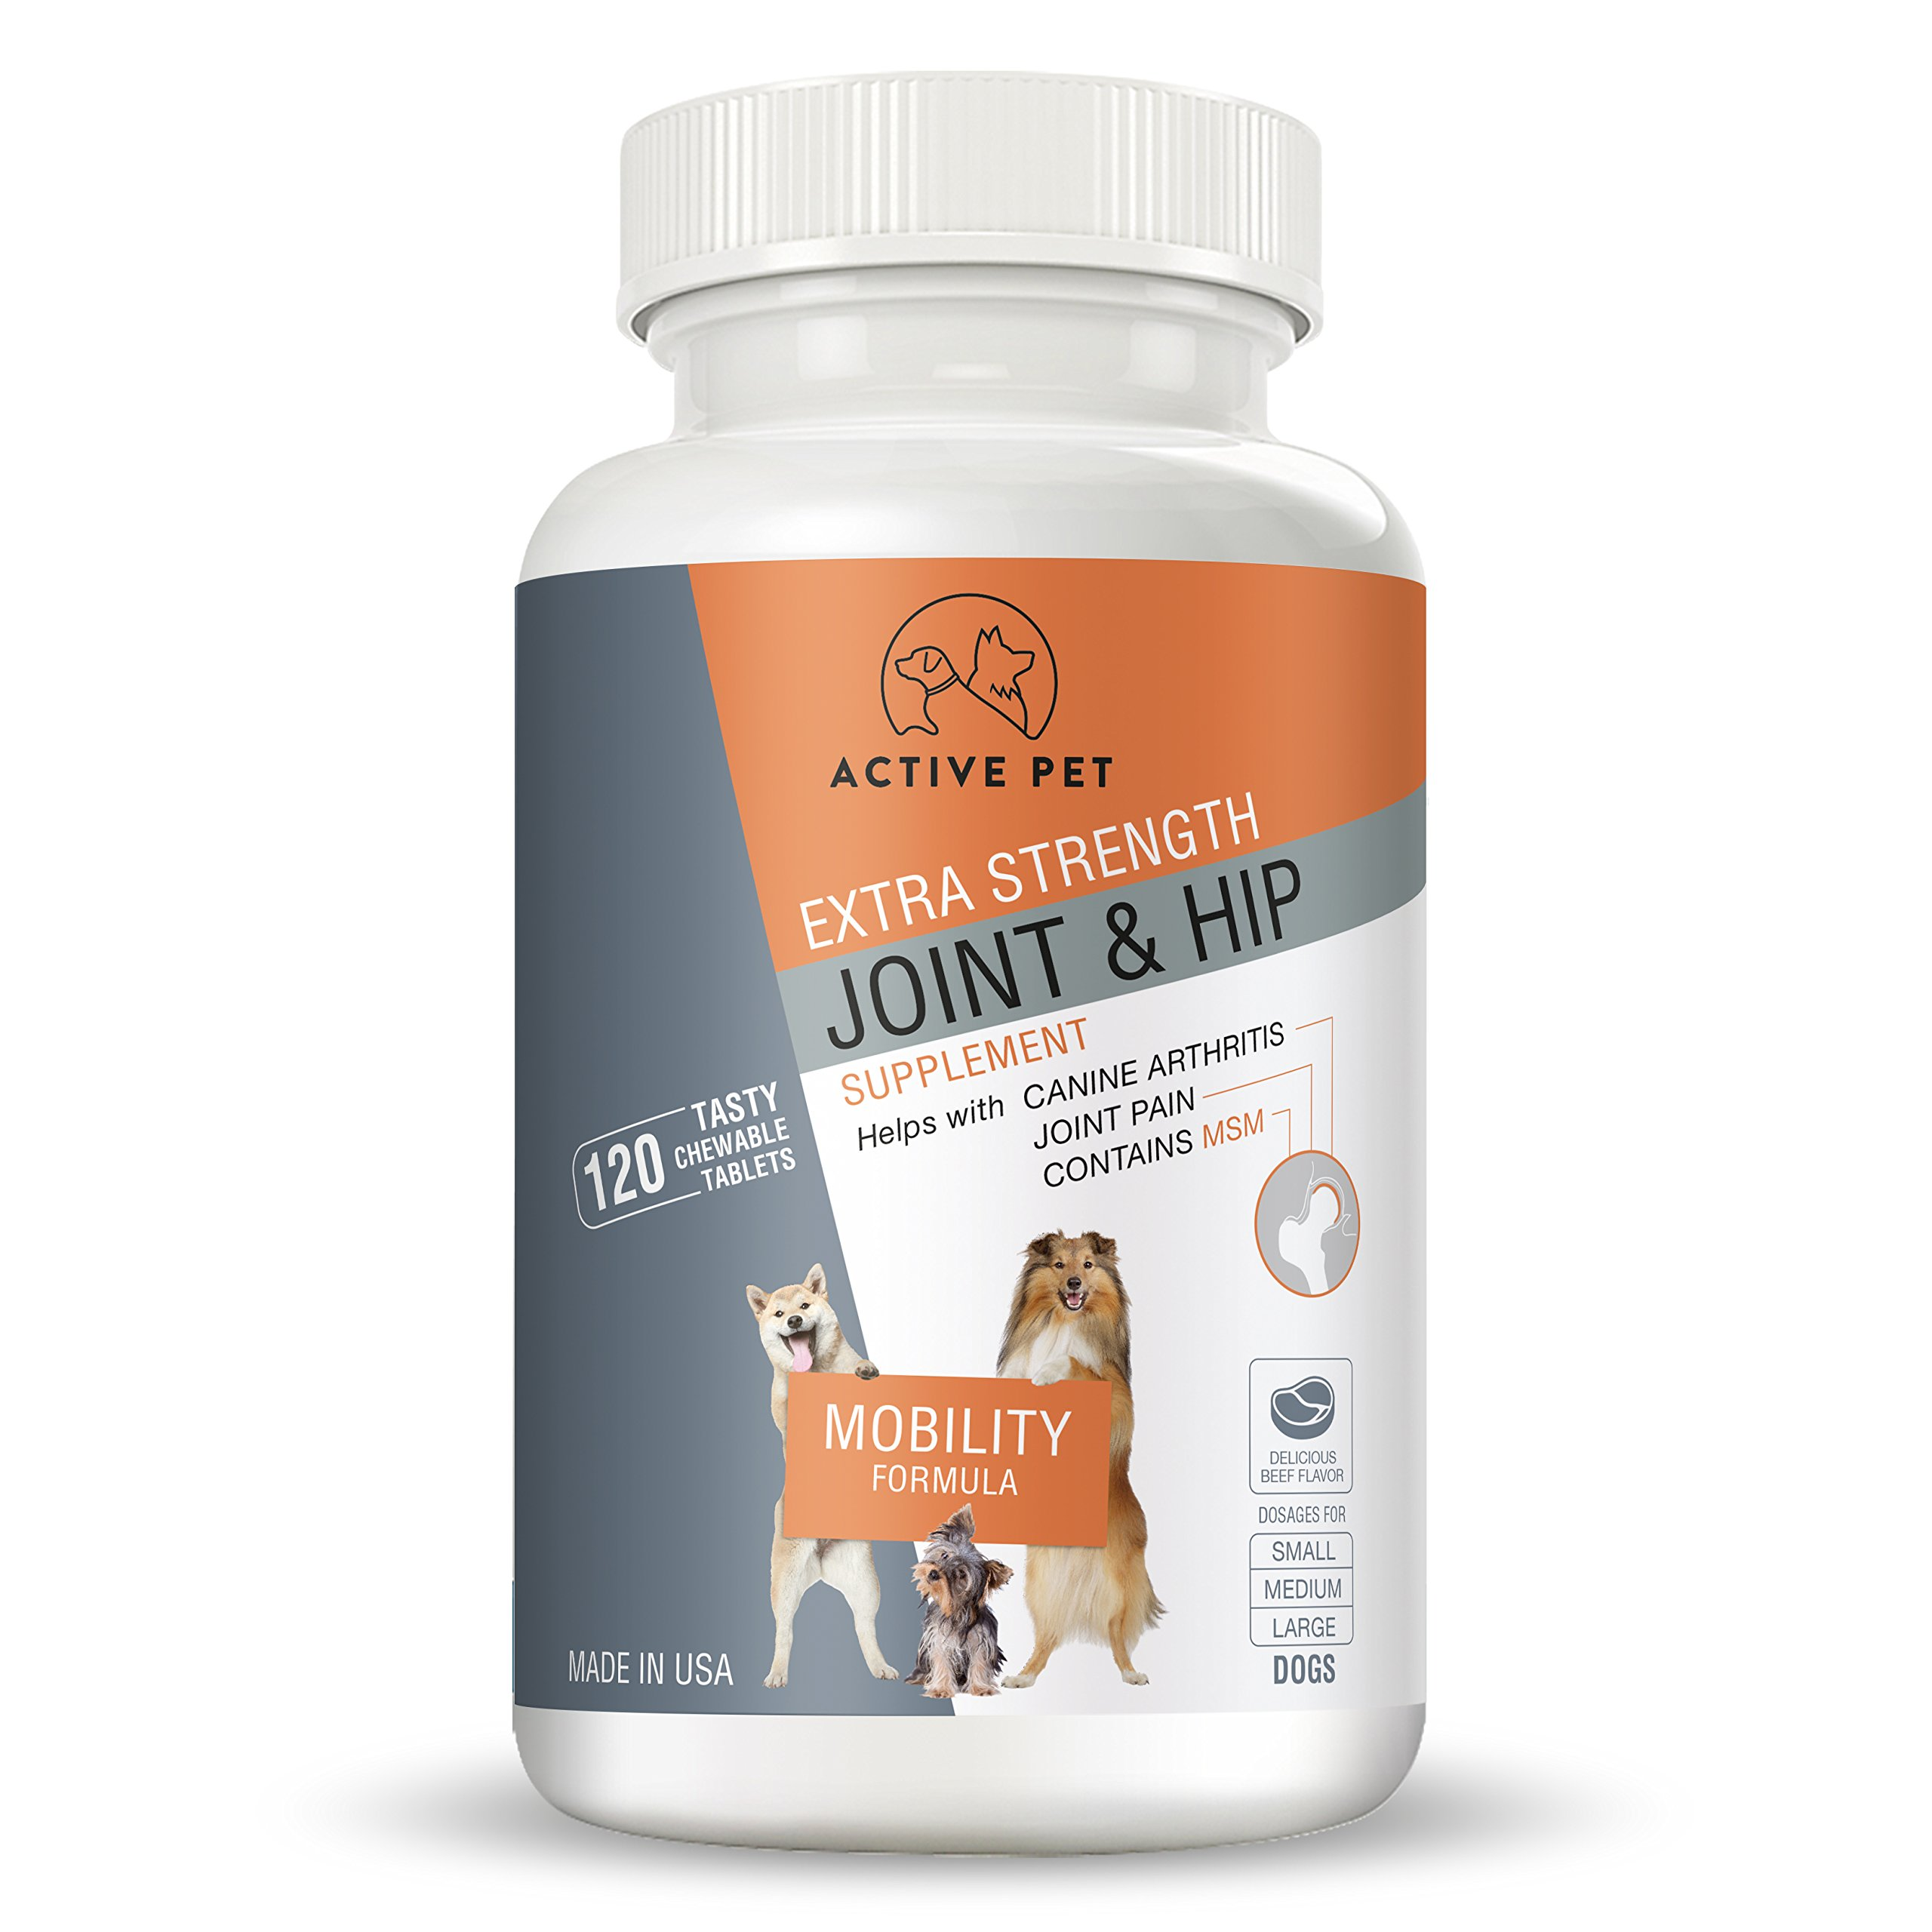 ActivePet Extra Strength Hip and Joint Mobility Formula Dog Supplement With MSM, Glucosamine and Chondroitin Antioxidant, For Joint Pain and Inflammation in Pets - 120 Chewable Tablets